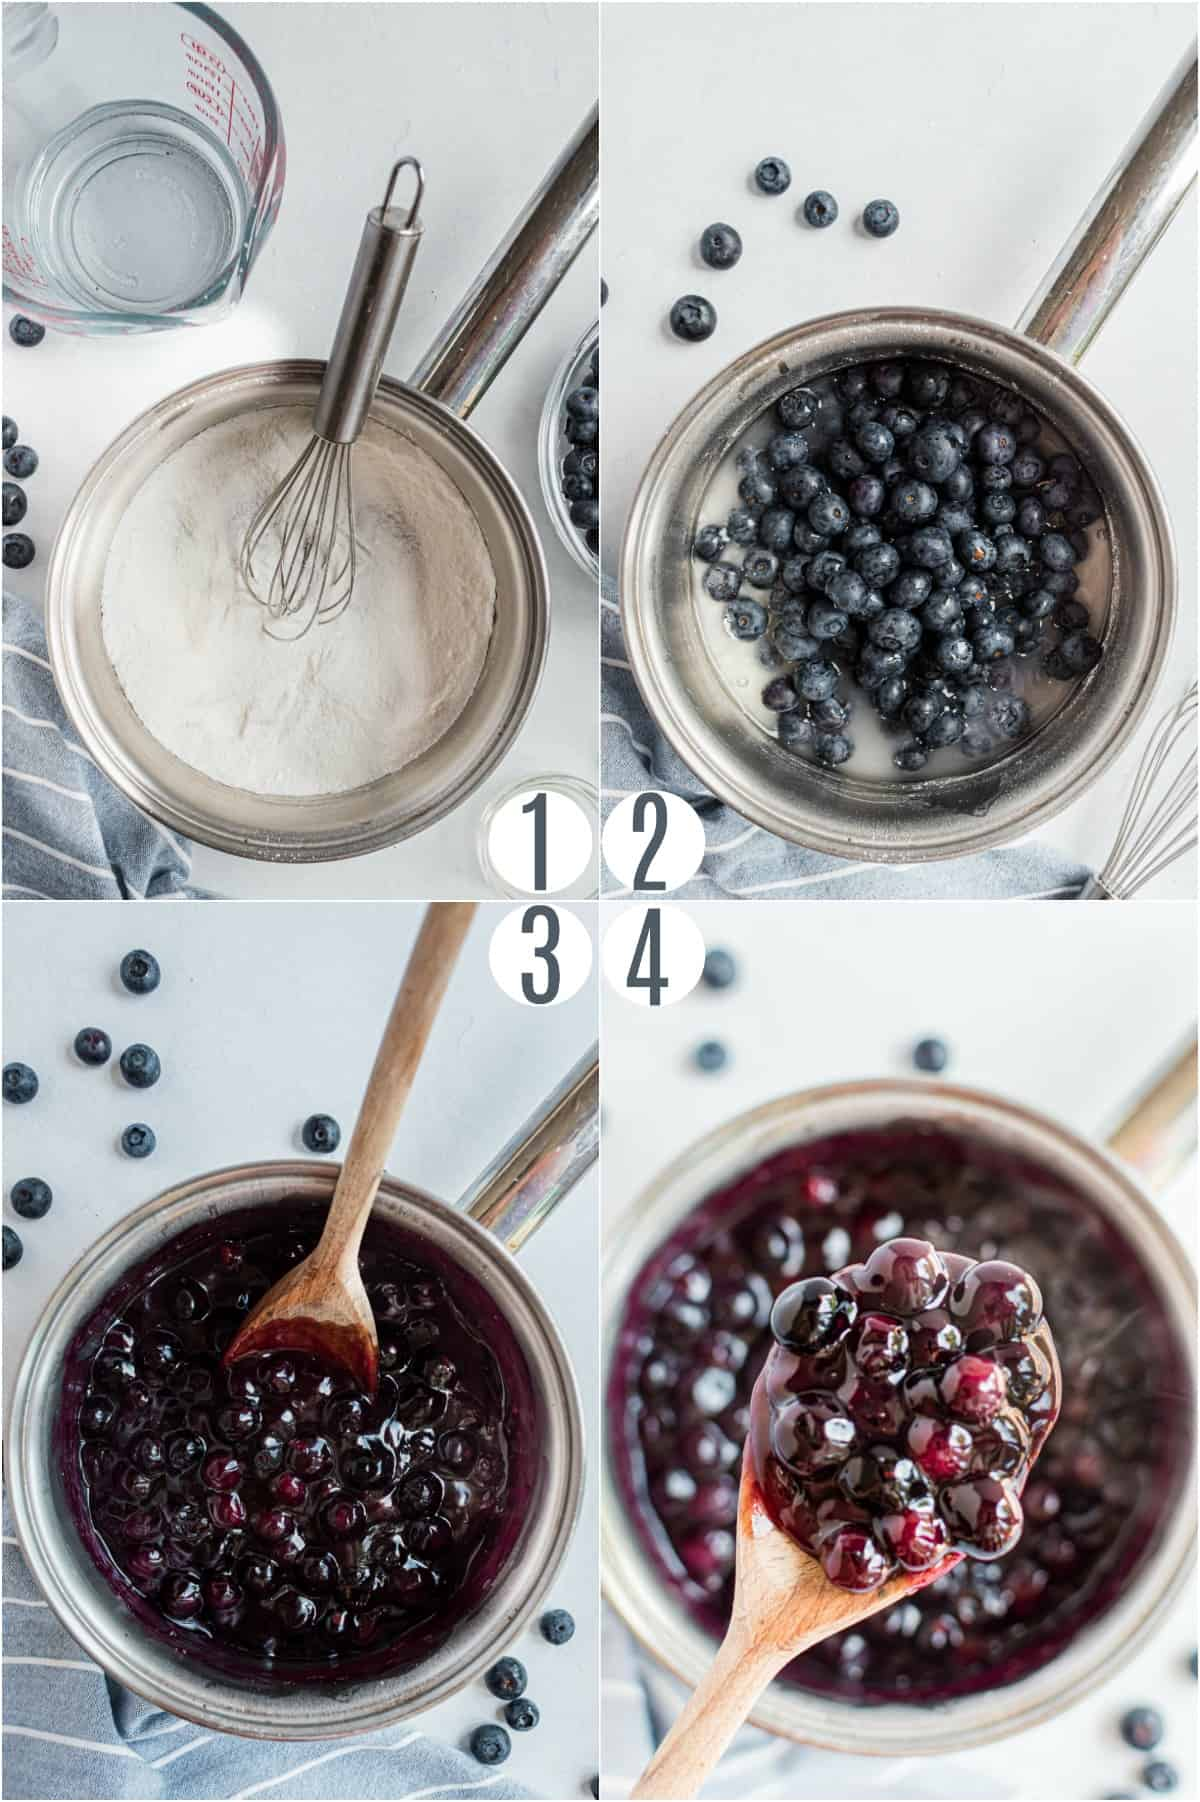 Step by step photos showing how to make blueberry pie filling.